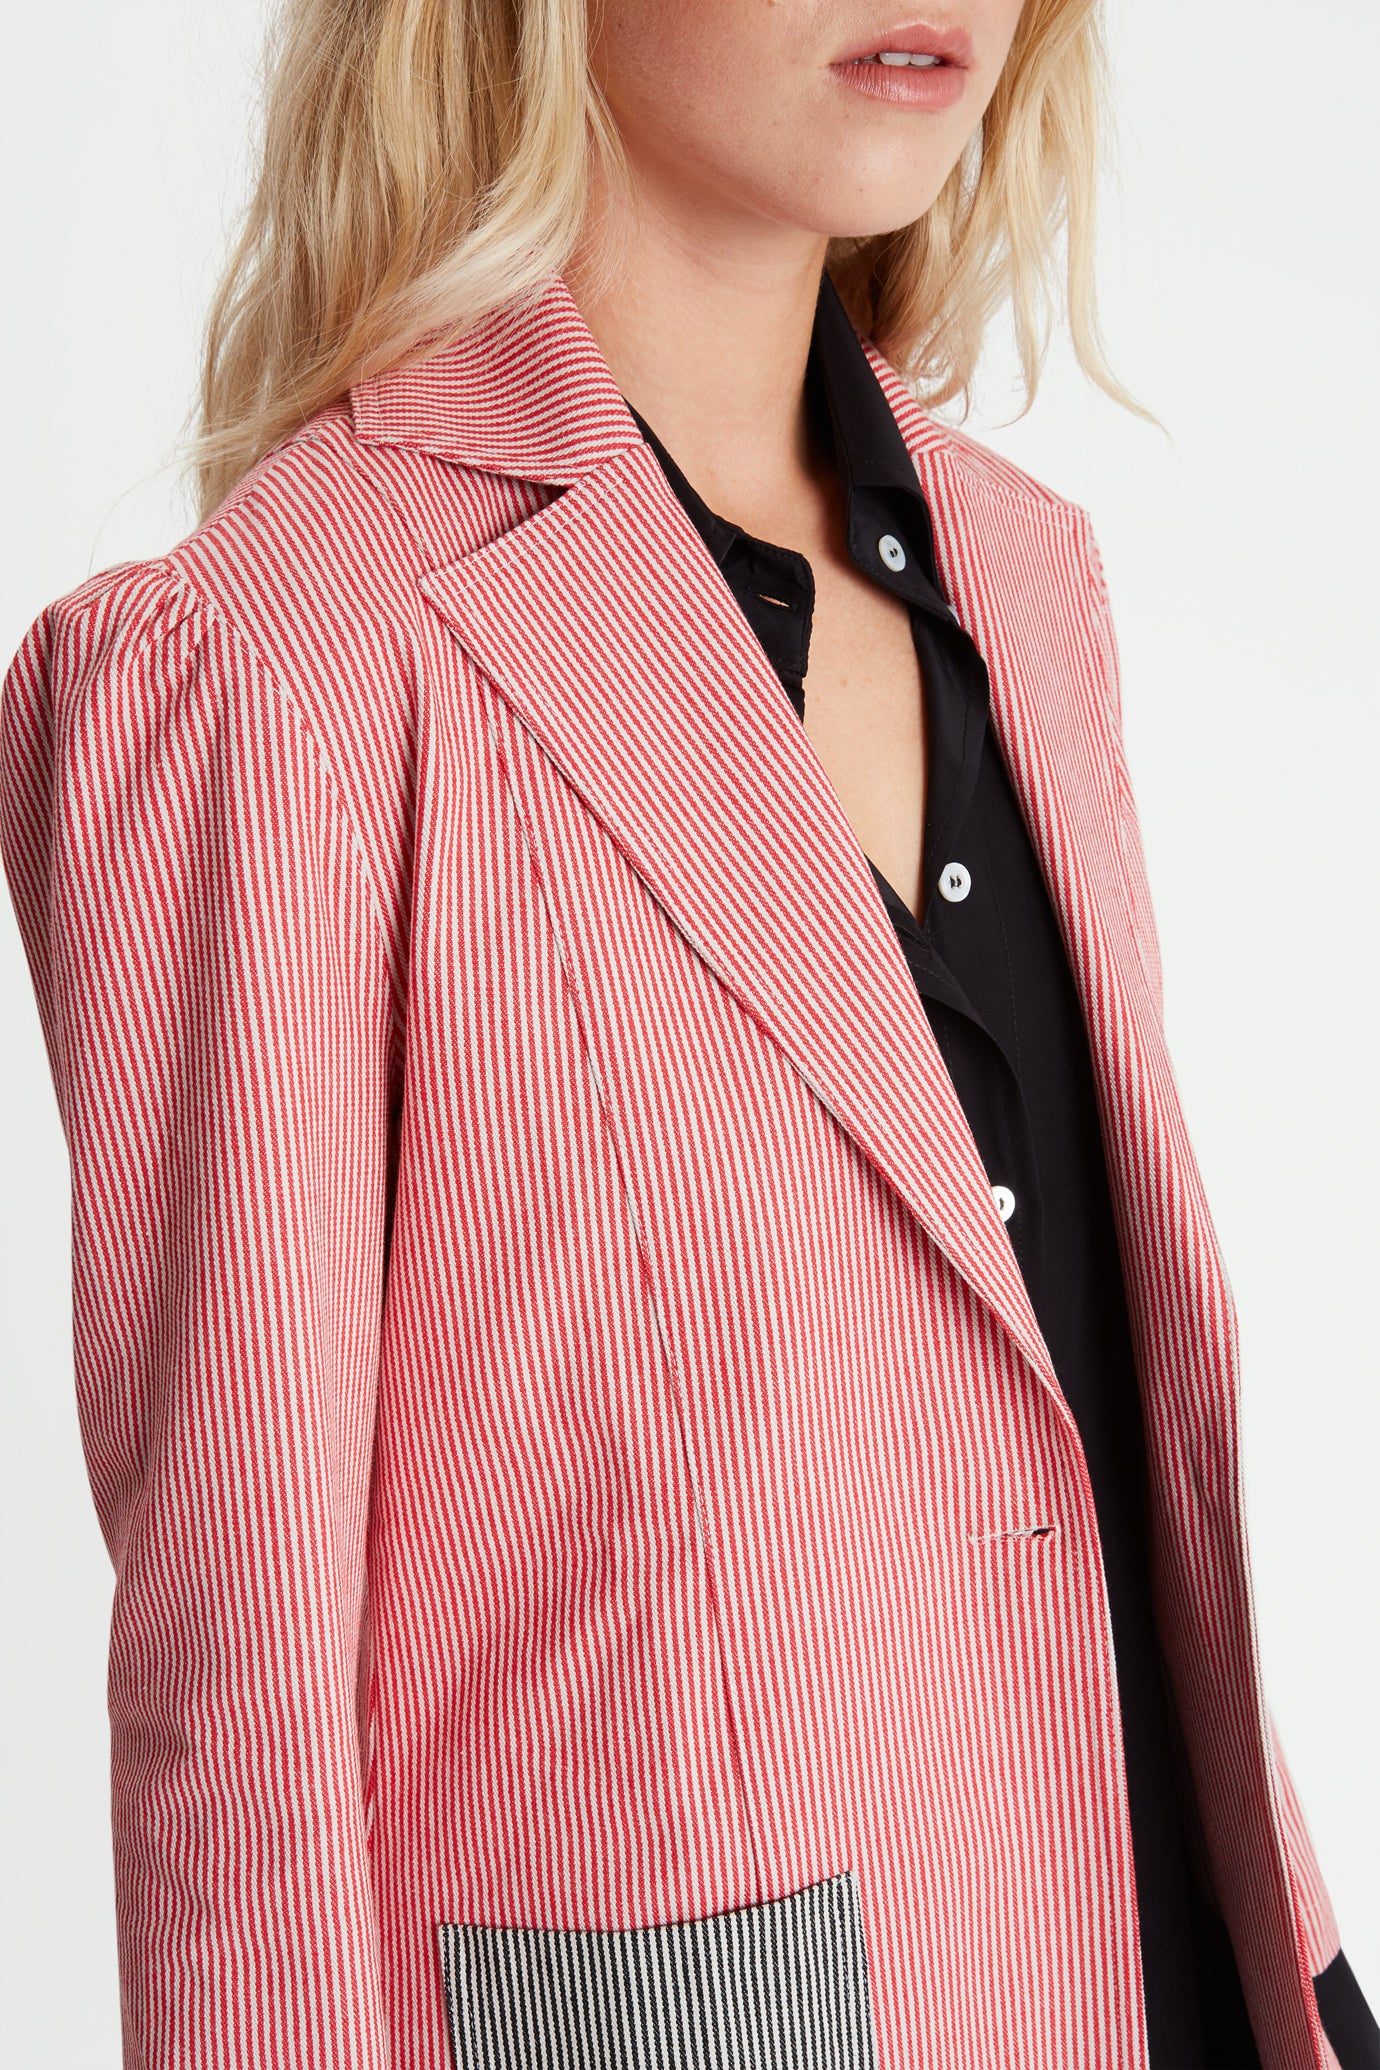 The Serena Suit Blazer - Red & Black Candy Stripes Cotton - SERENA BUTE